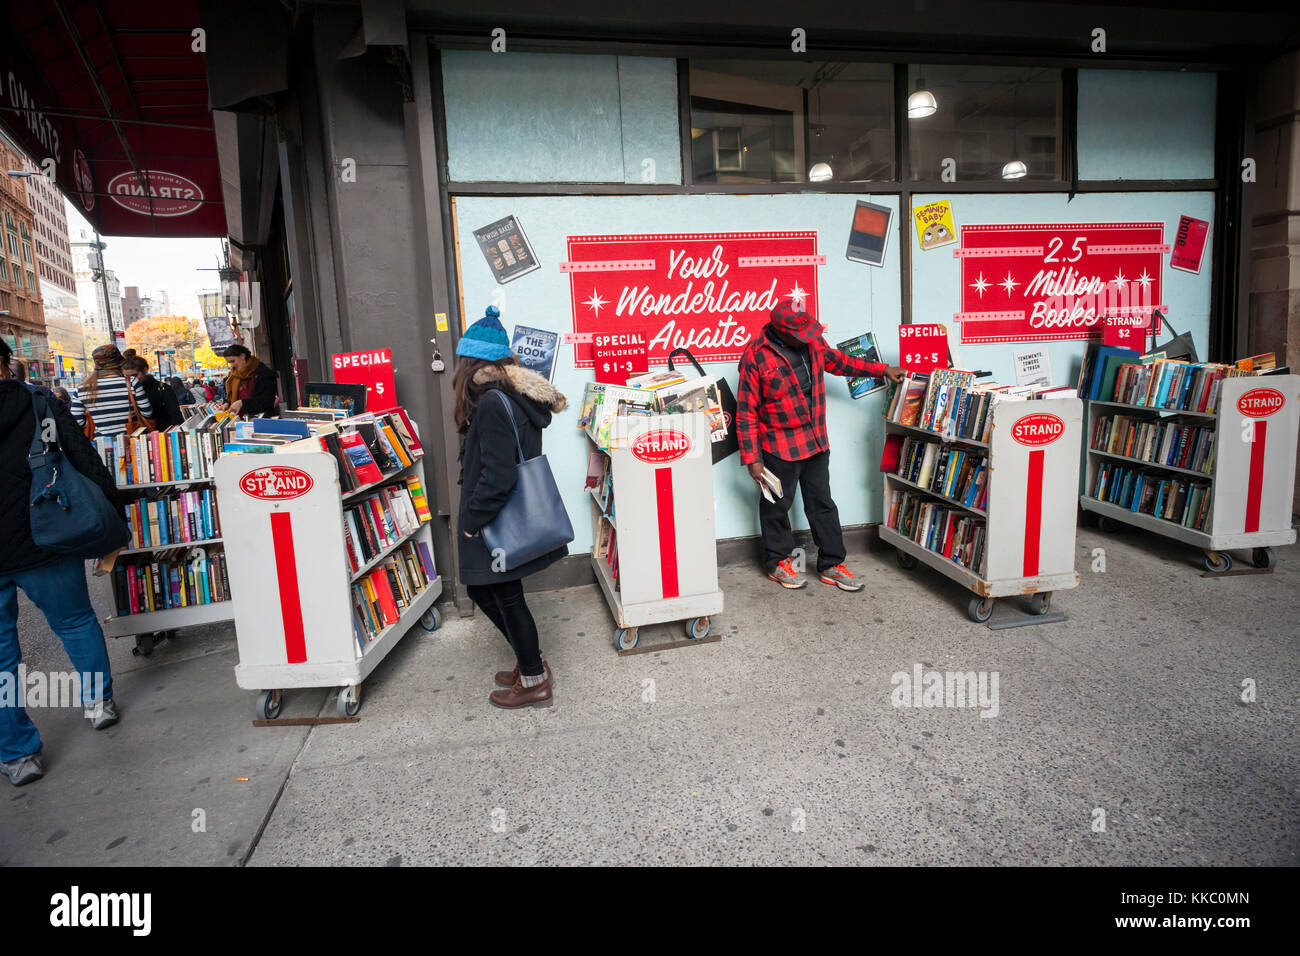 Shoppers browse the Strand bookstore in New York looking for bargains on Saturday, November 25, 2017 over the Black - Stock Image